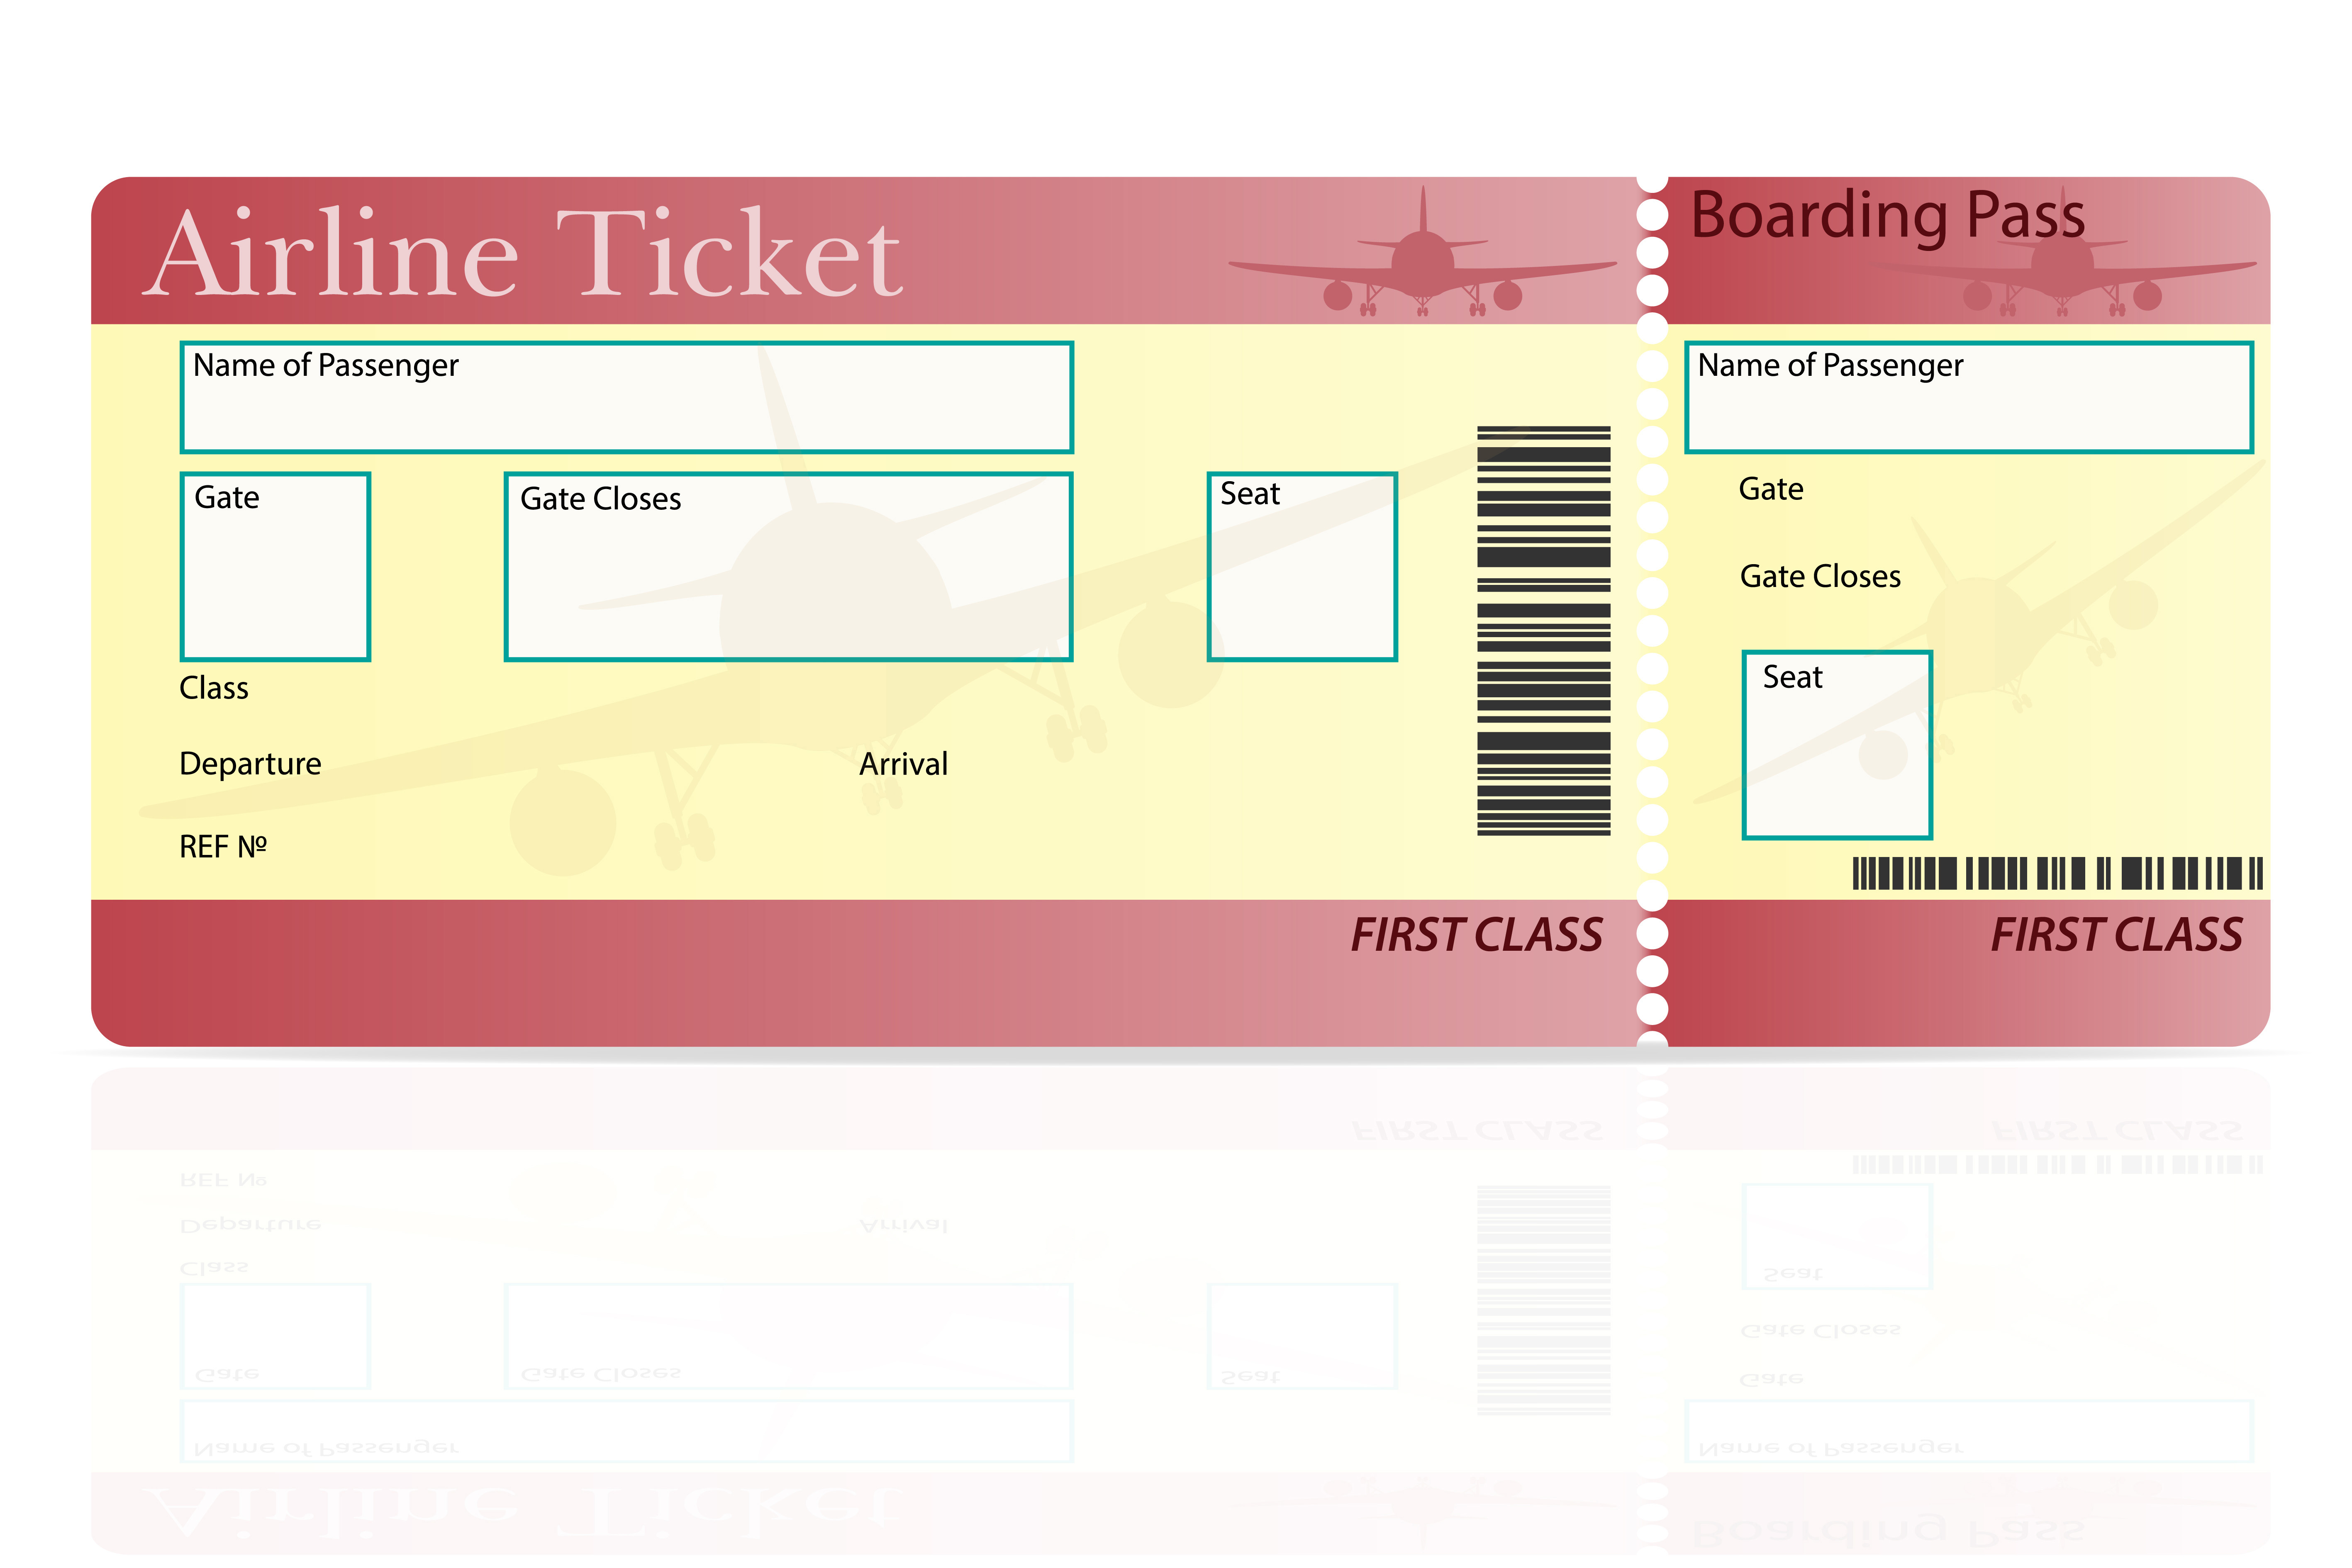 airline ticket first class vector illustration - Download Free Vectors,  Clipart Graphics & Vector Art